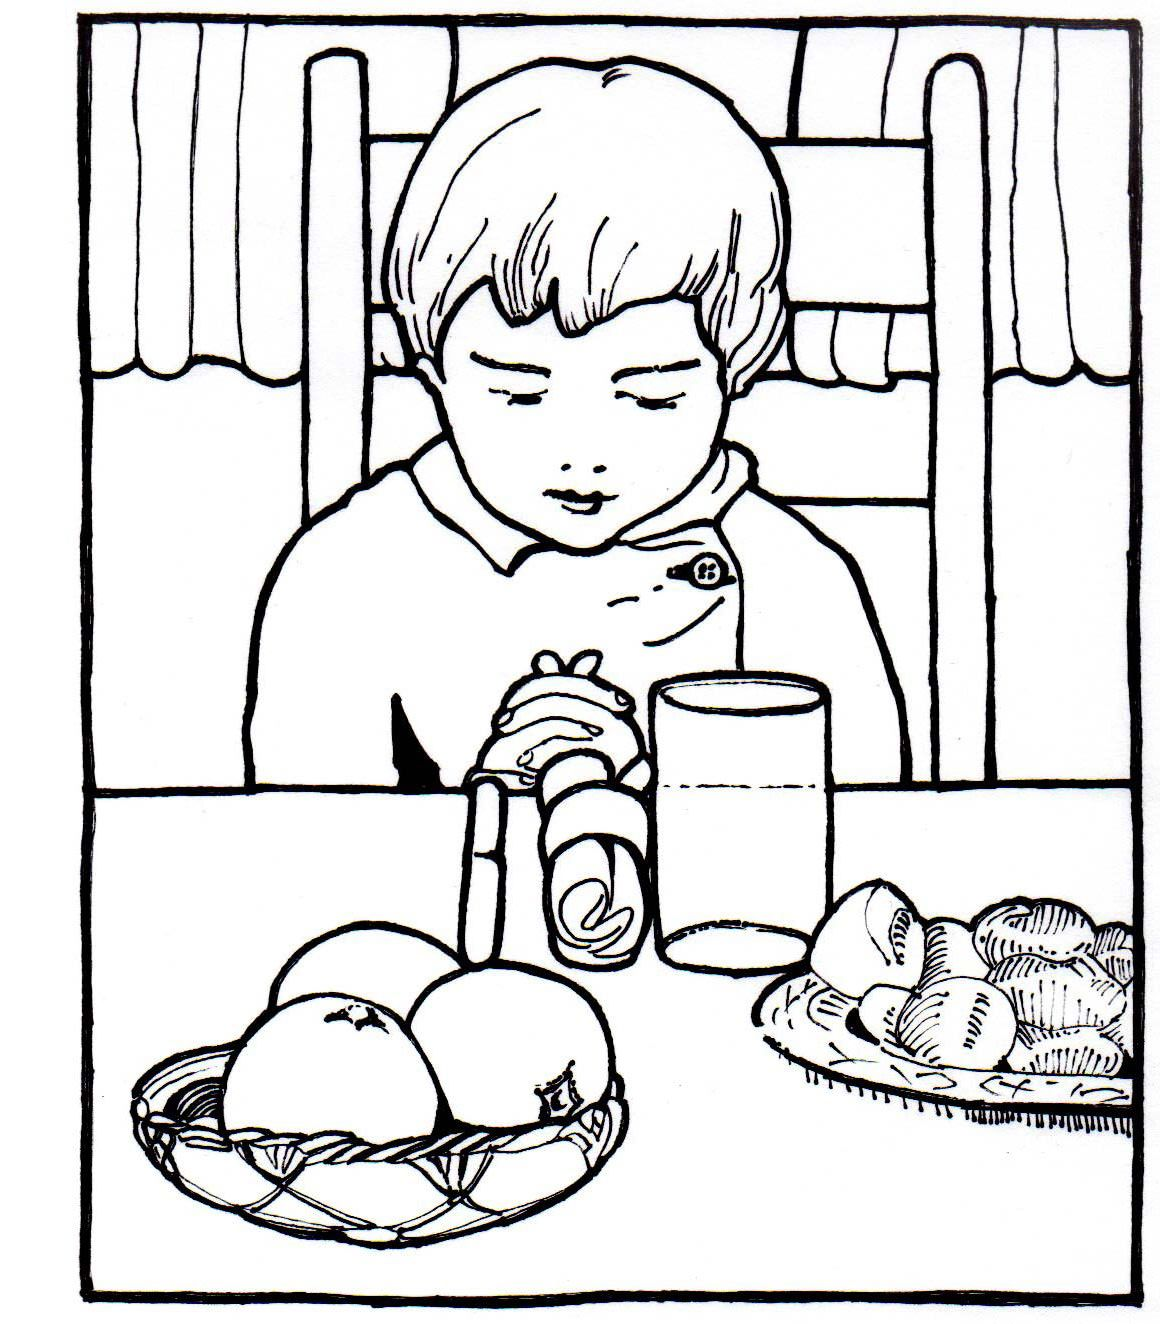 Coloring pages zacchaeus - Coloring Page Of A Boy Praying Grace Before A Meal